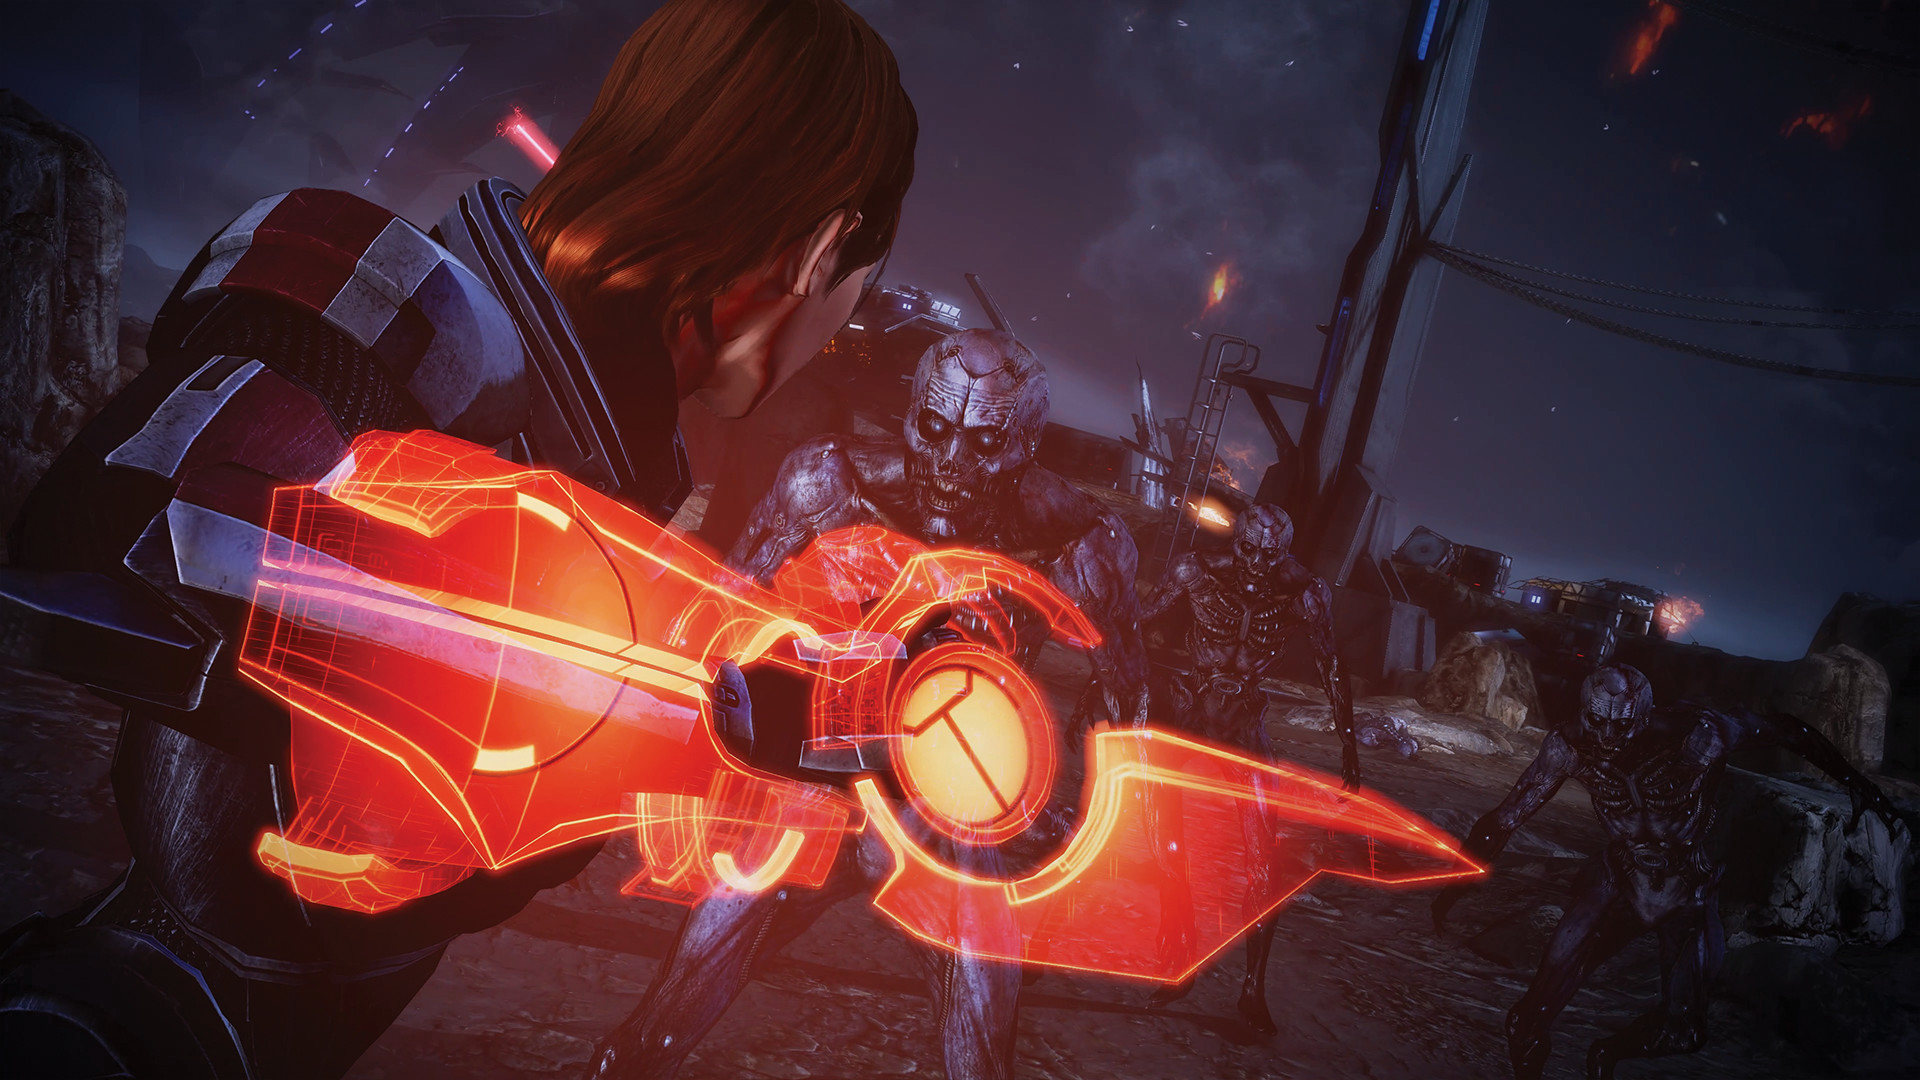 Mass Effect Legendary Edition gets a shiny coat of paint